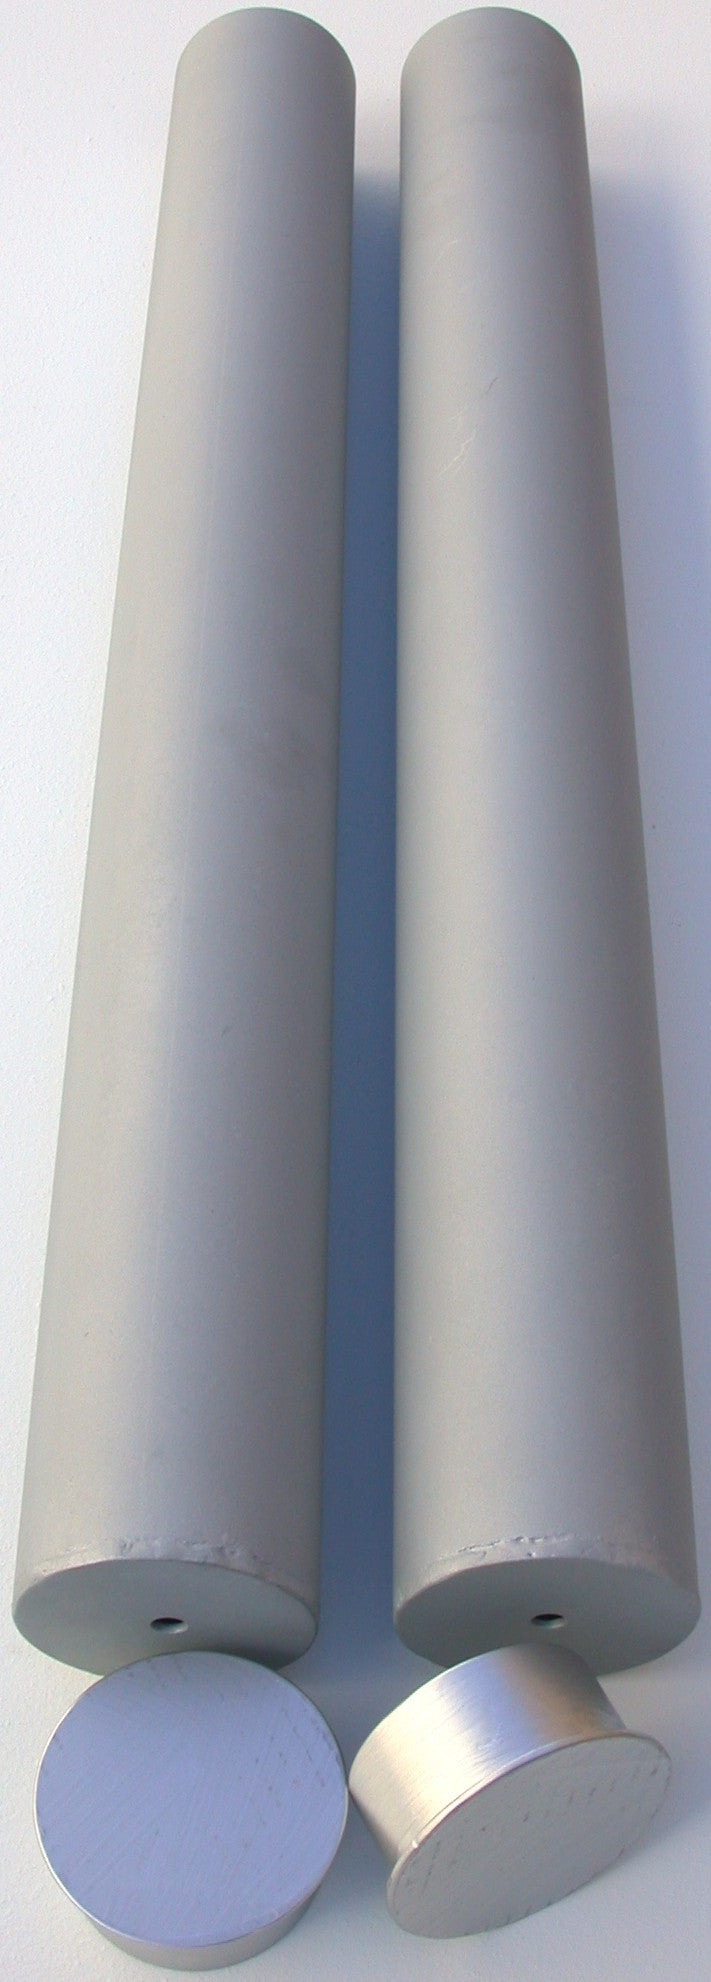 2375A-pair of galvanized steel post sleeves, 2.375-inch I.D.